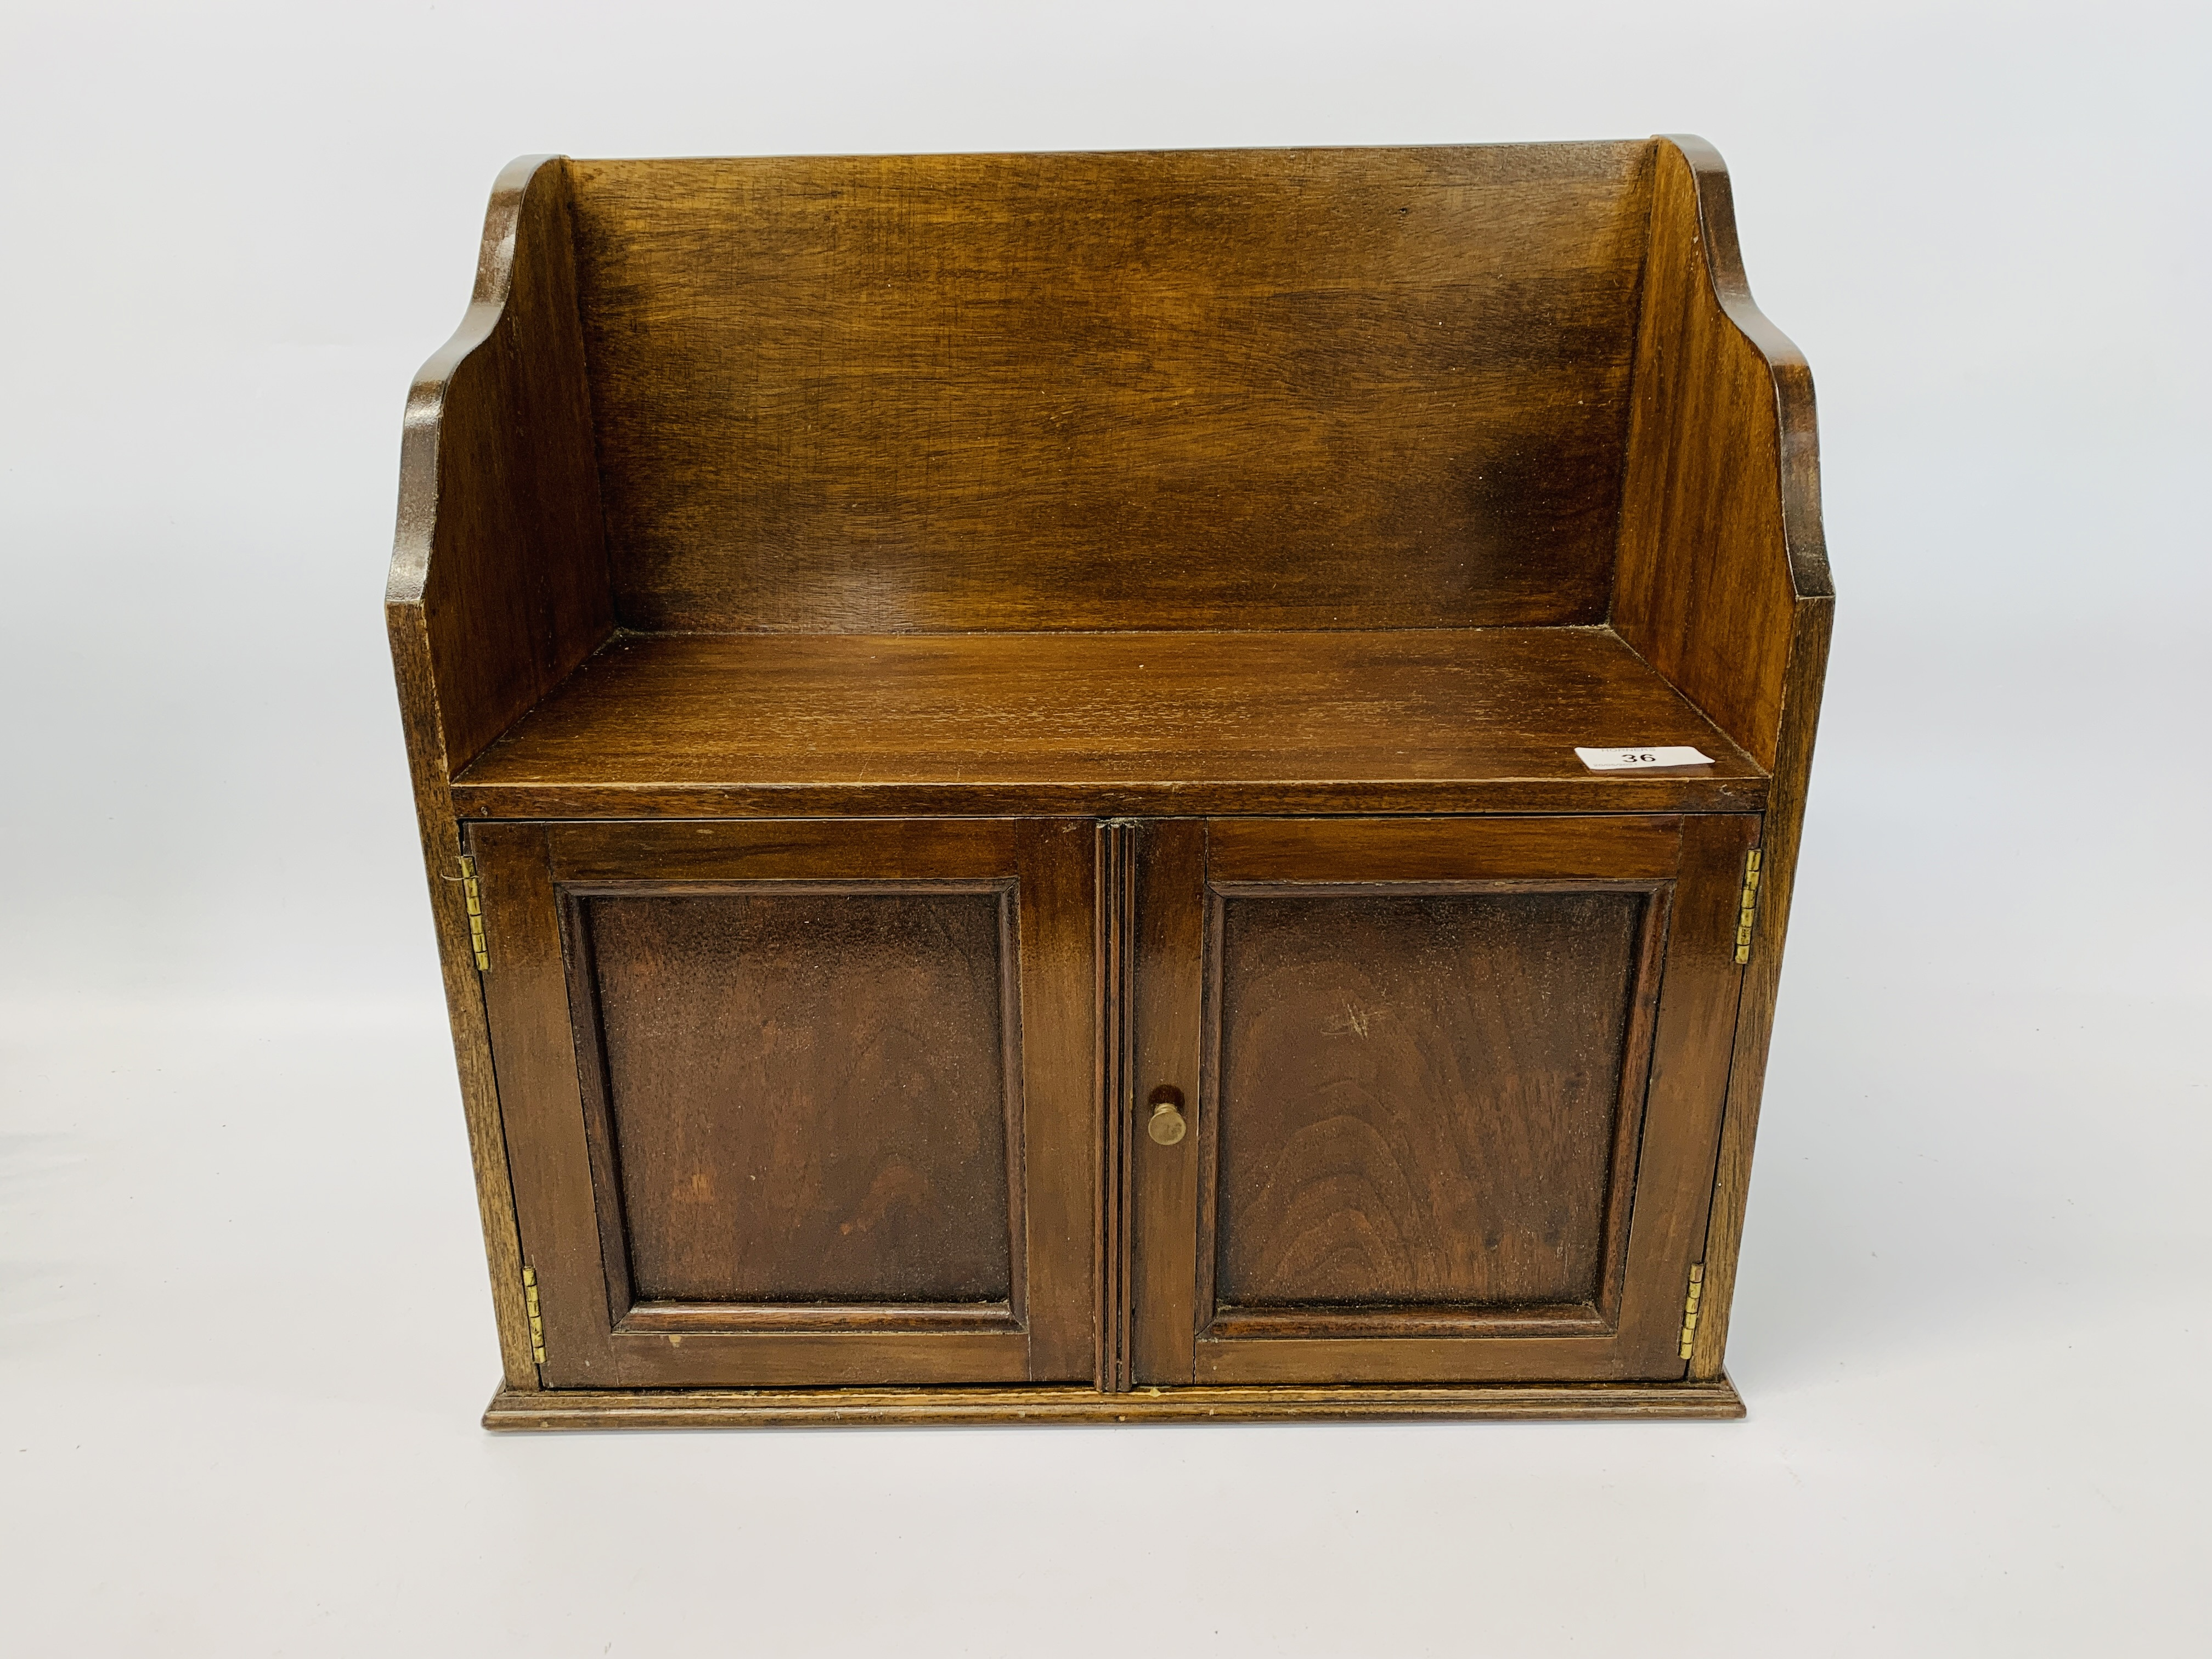 CARVED OAK WALL BRACKET ALONG WITH A VINTAGE MAHOGANY WALL CABINET